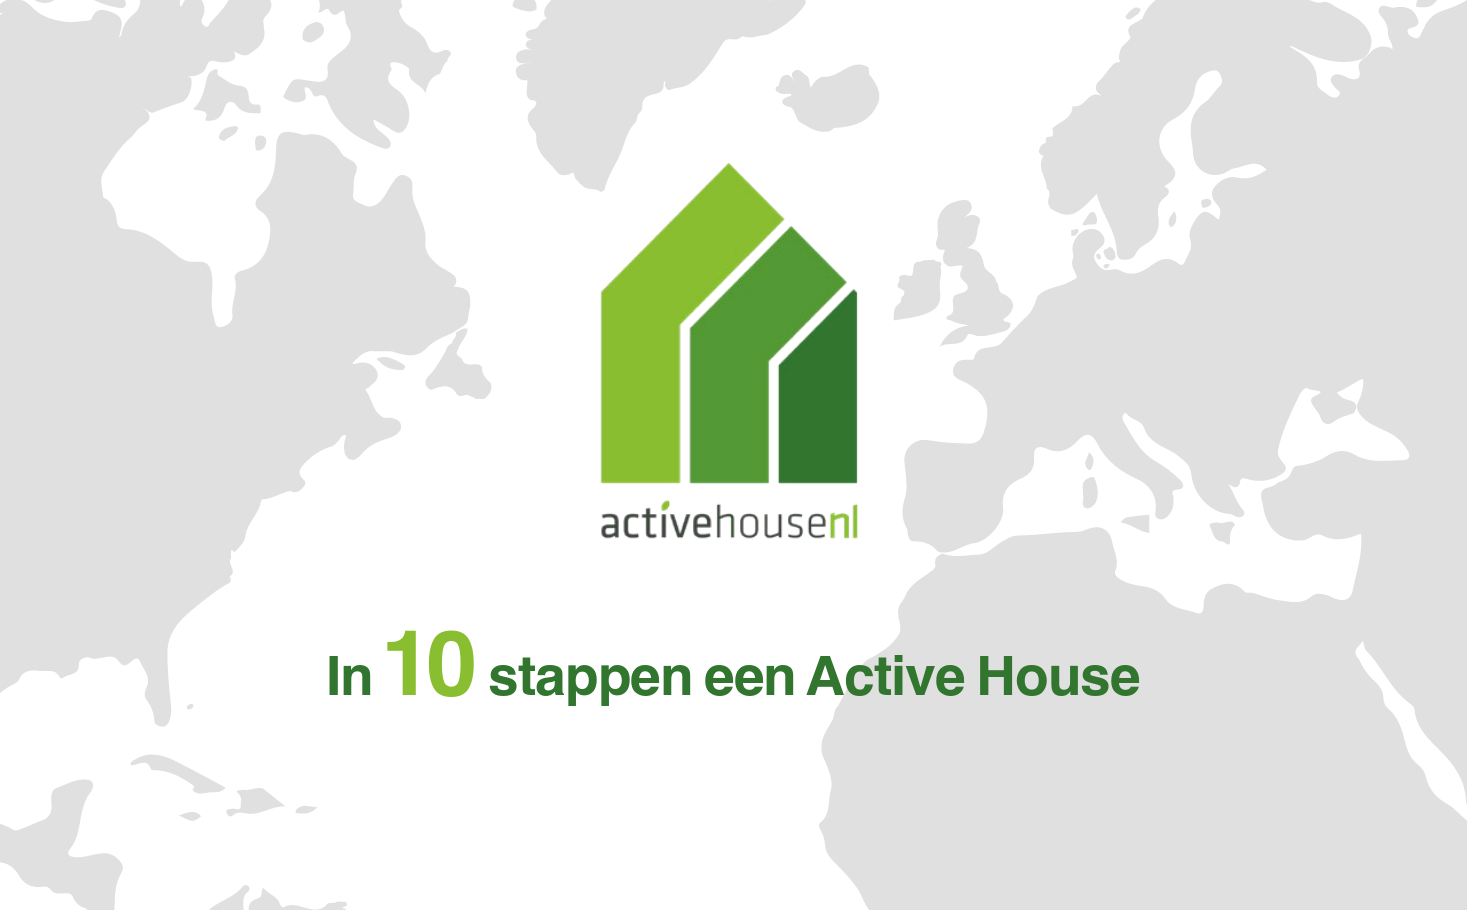 In 10 stappen een Active House